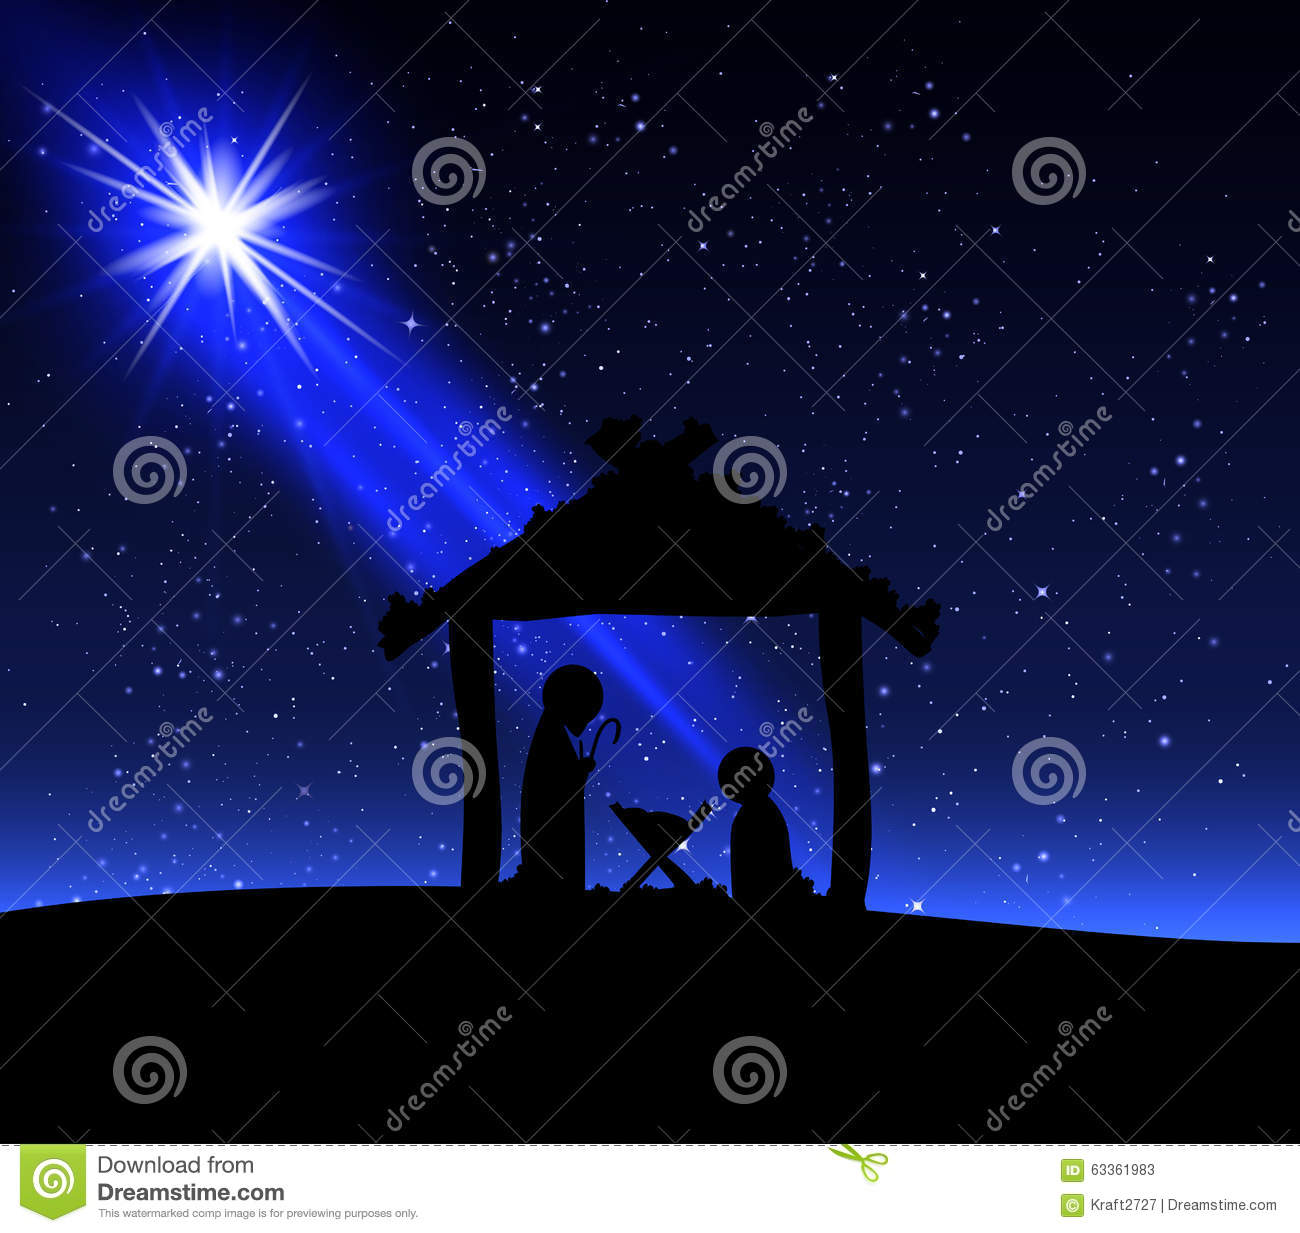 Jesus on Christmas night stock vector. Illustration of christ - 63361983